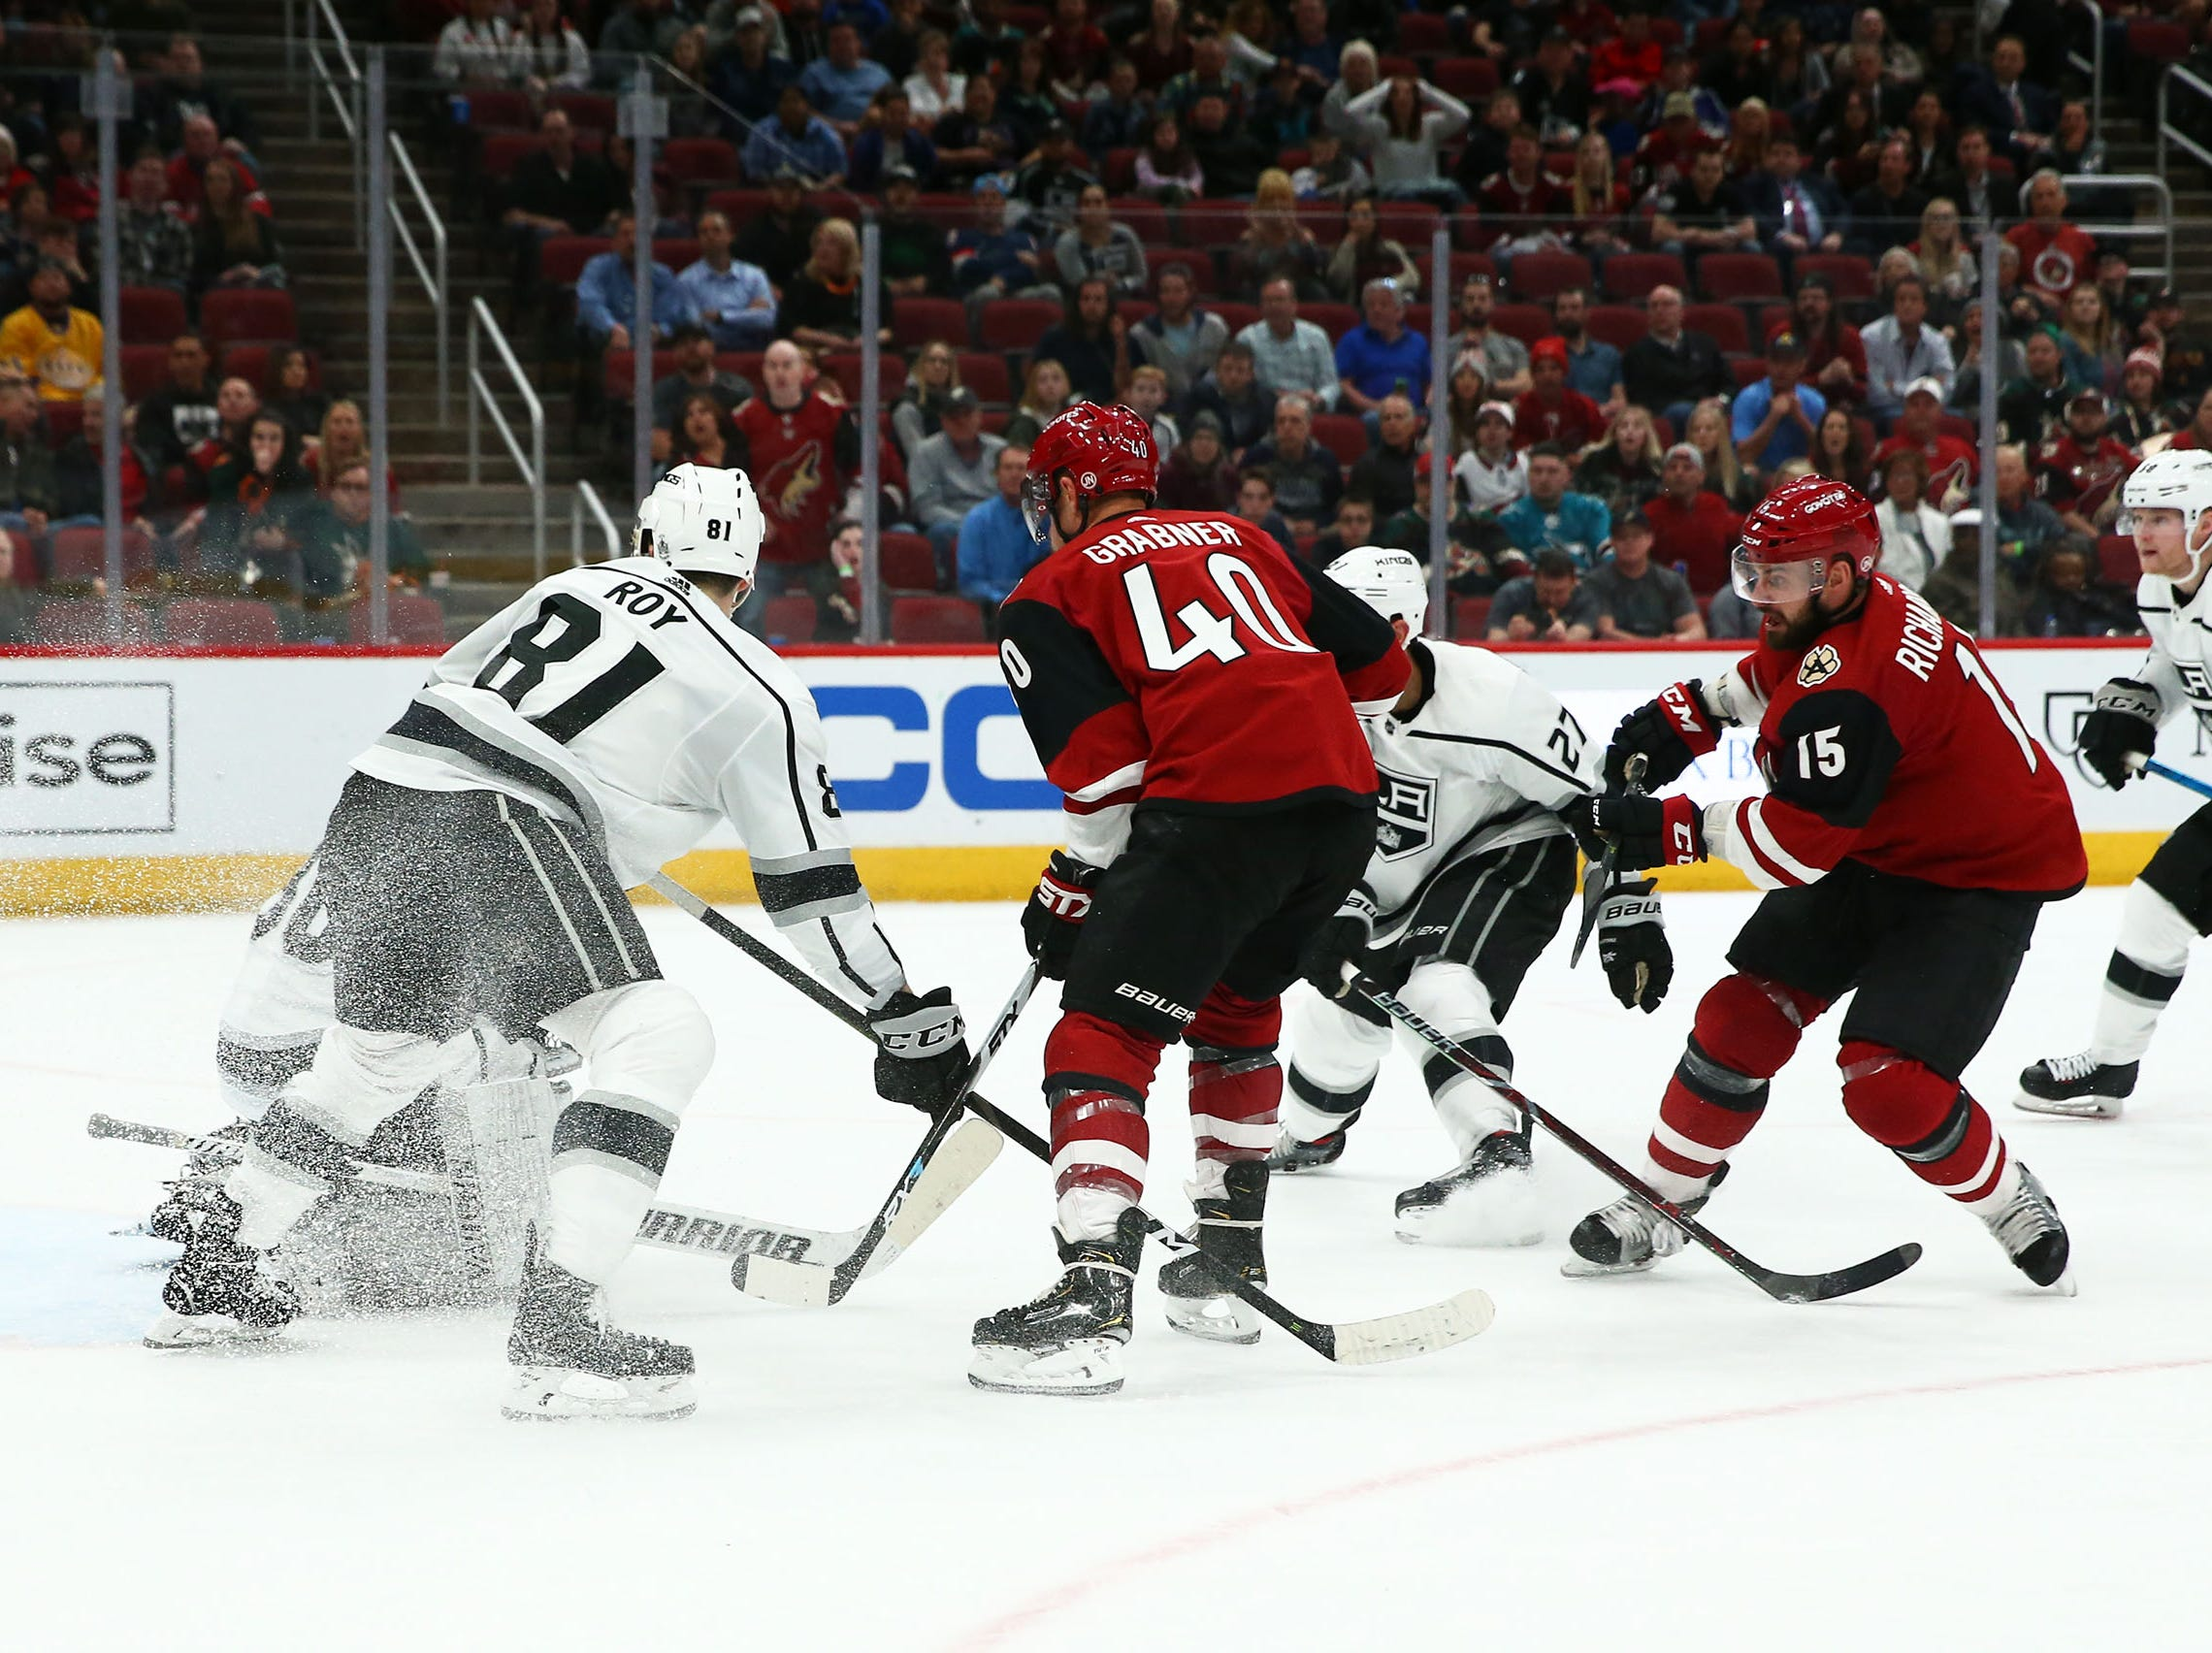 Arizona Coyotes center Brad Richardson (15) scores a goal  past Los Angeles Kings goaltender Jack Campbell (36) in the second period on Apr. 2, 2019 at Gila River Arena in Glendale, Ariz.